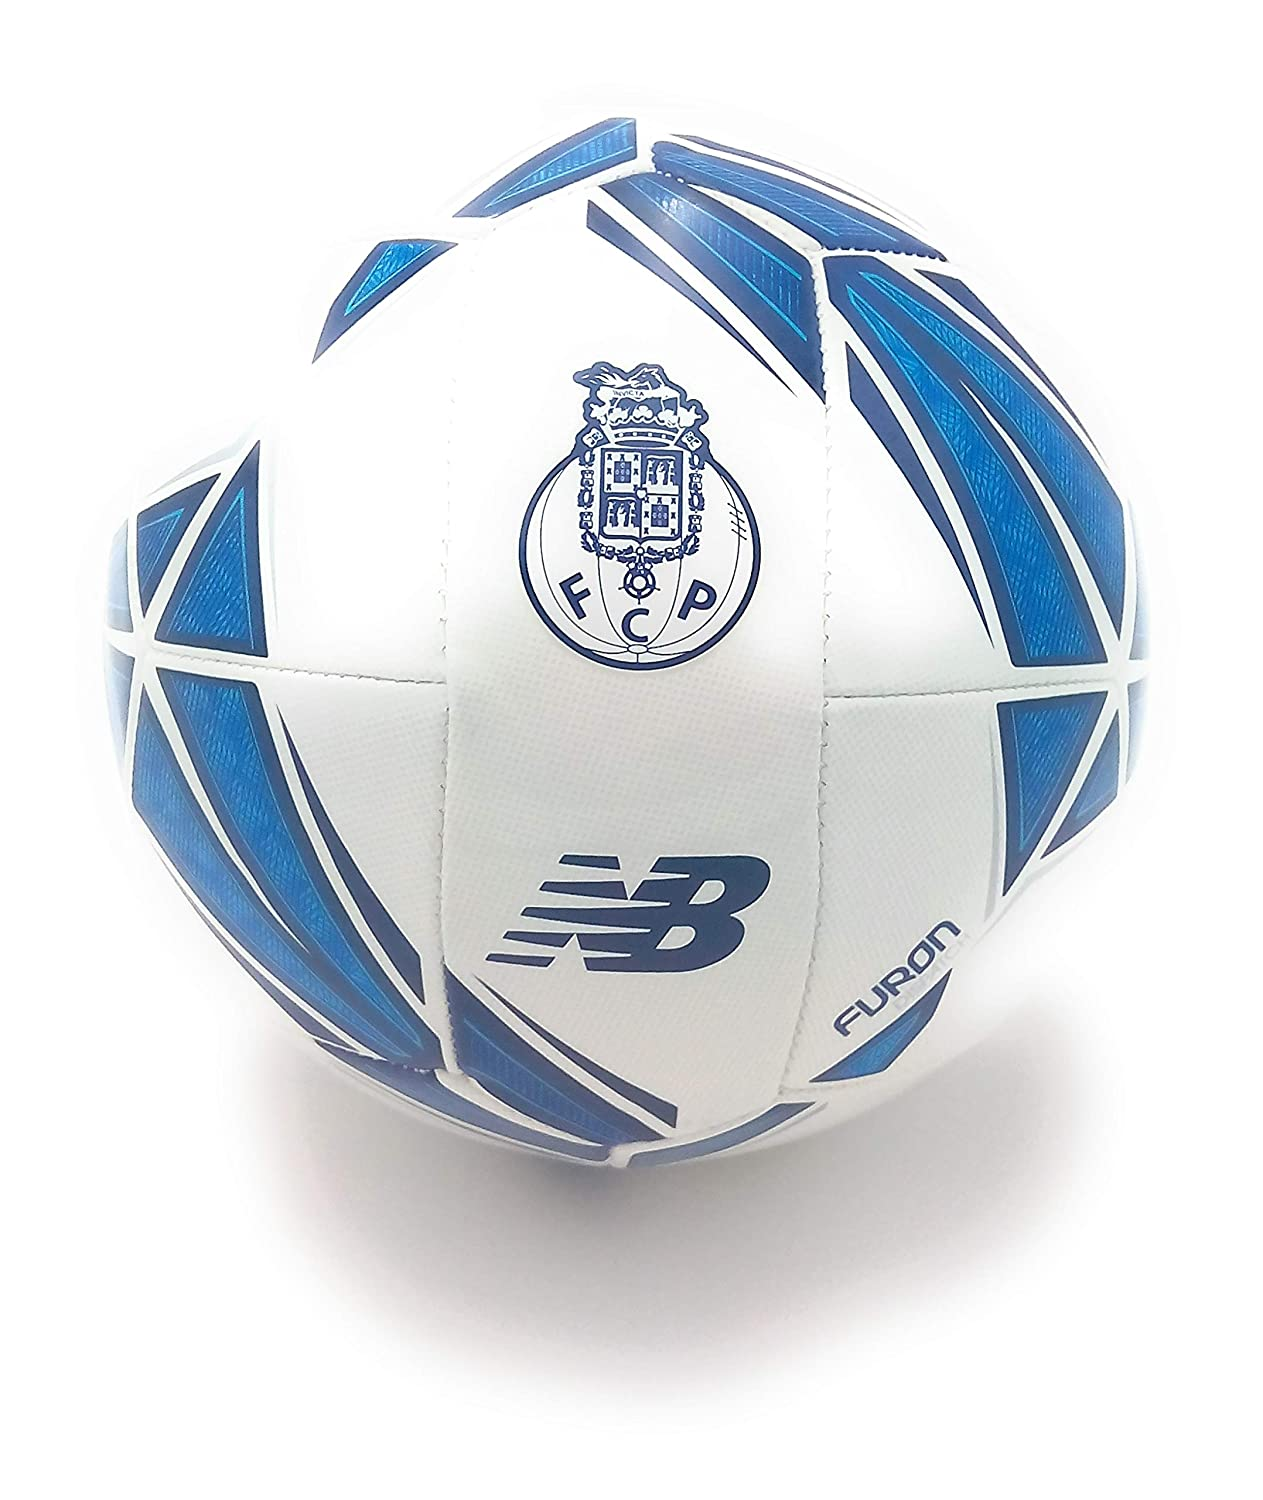 New Balance Balón de fútbol del Athletic Club Bilbao 2019-2020 ...